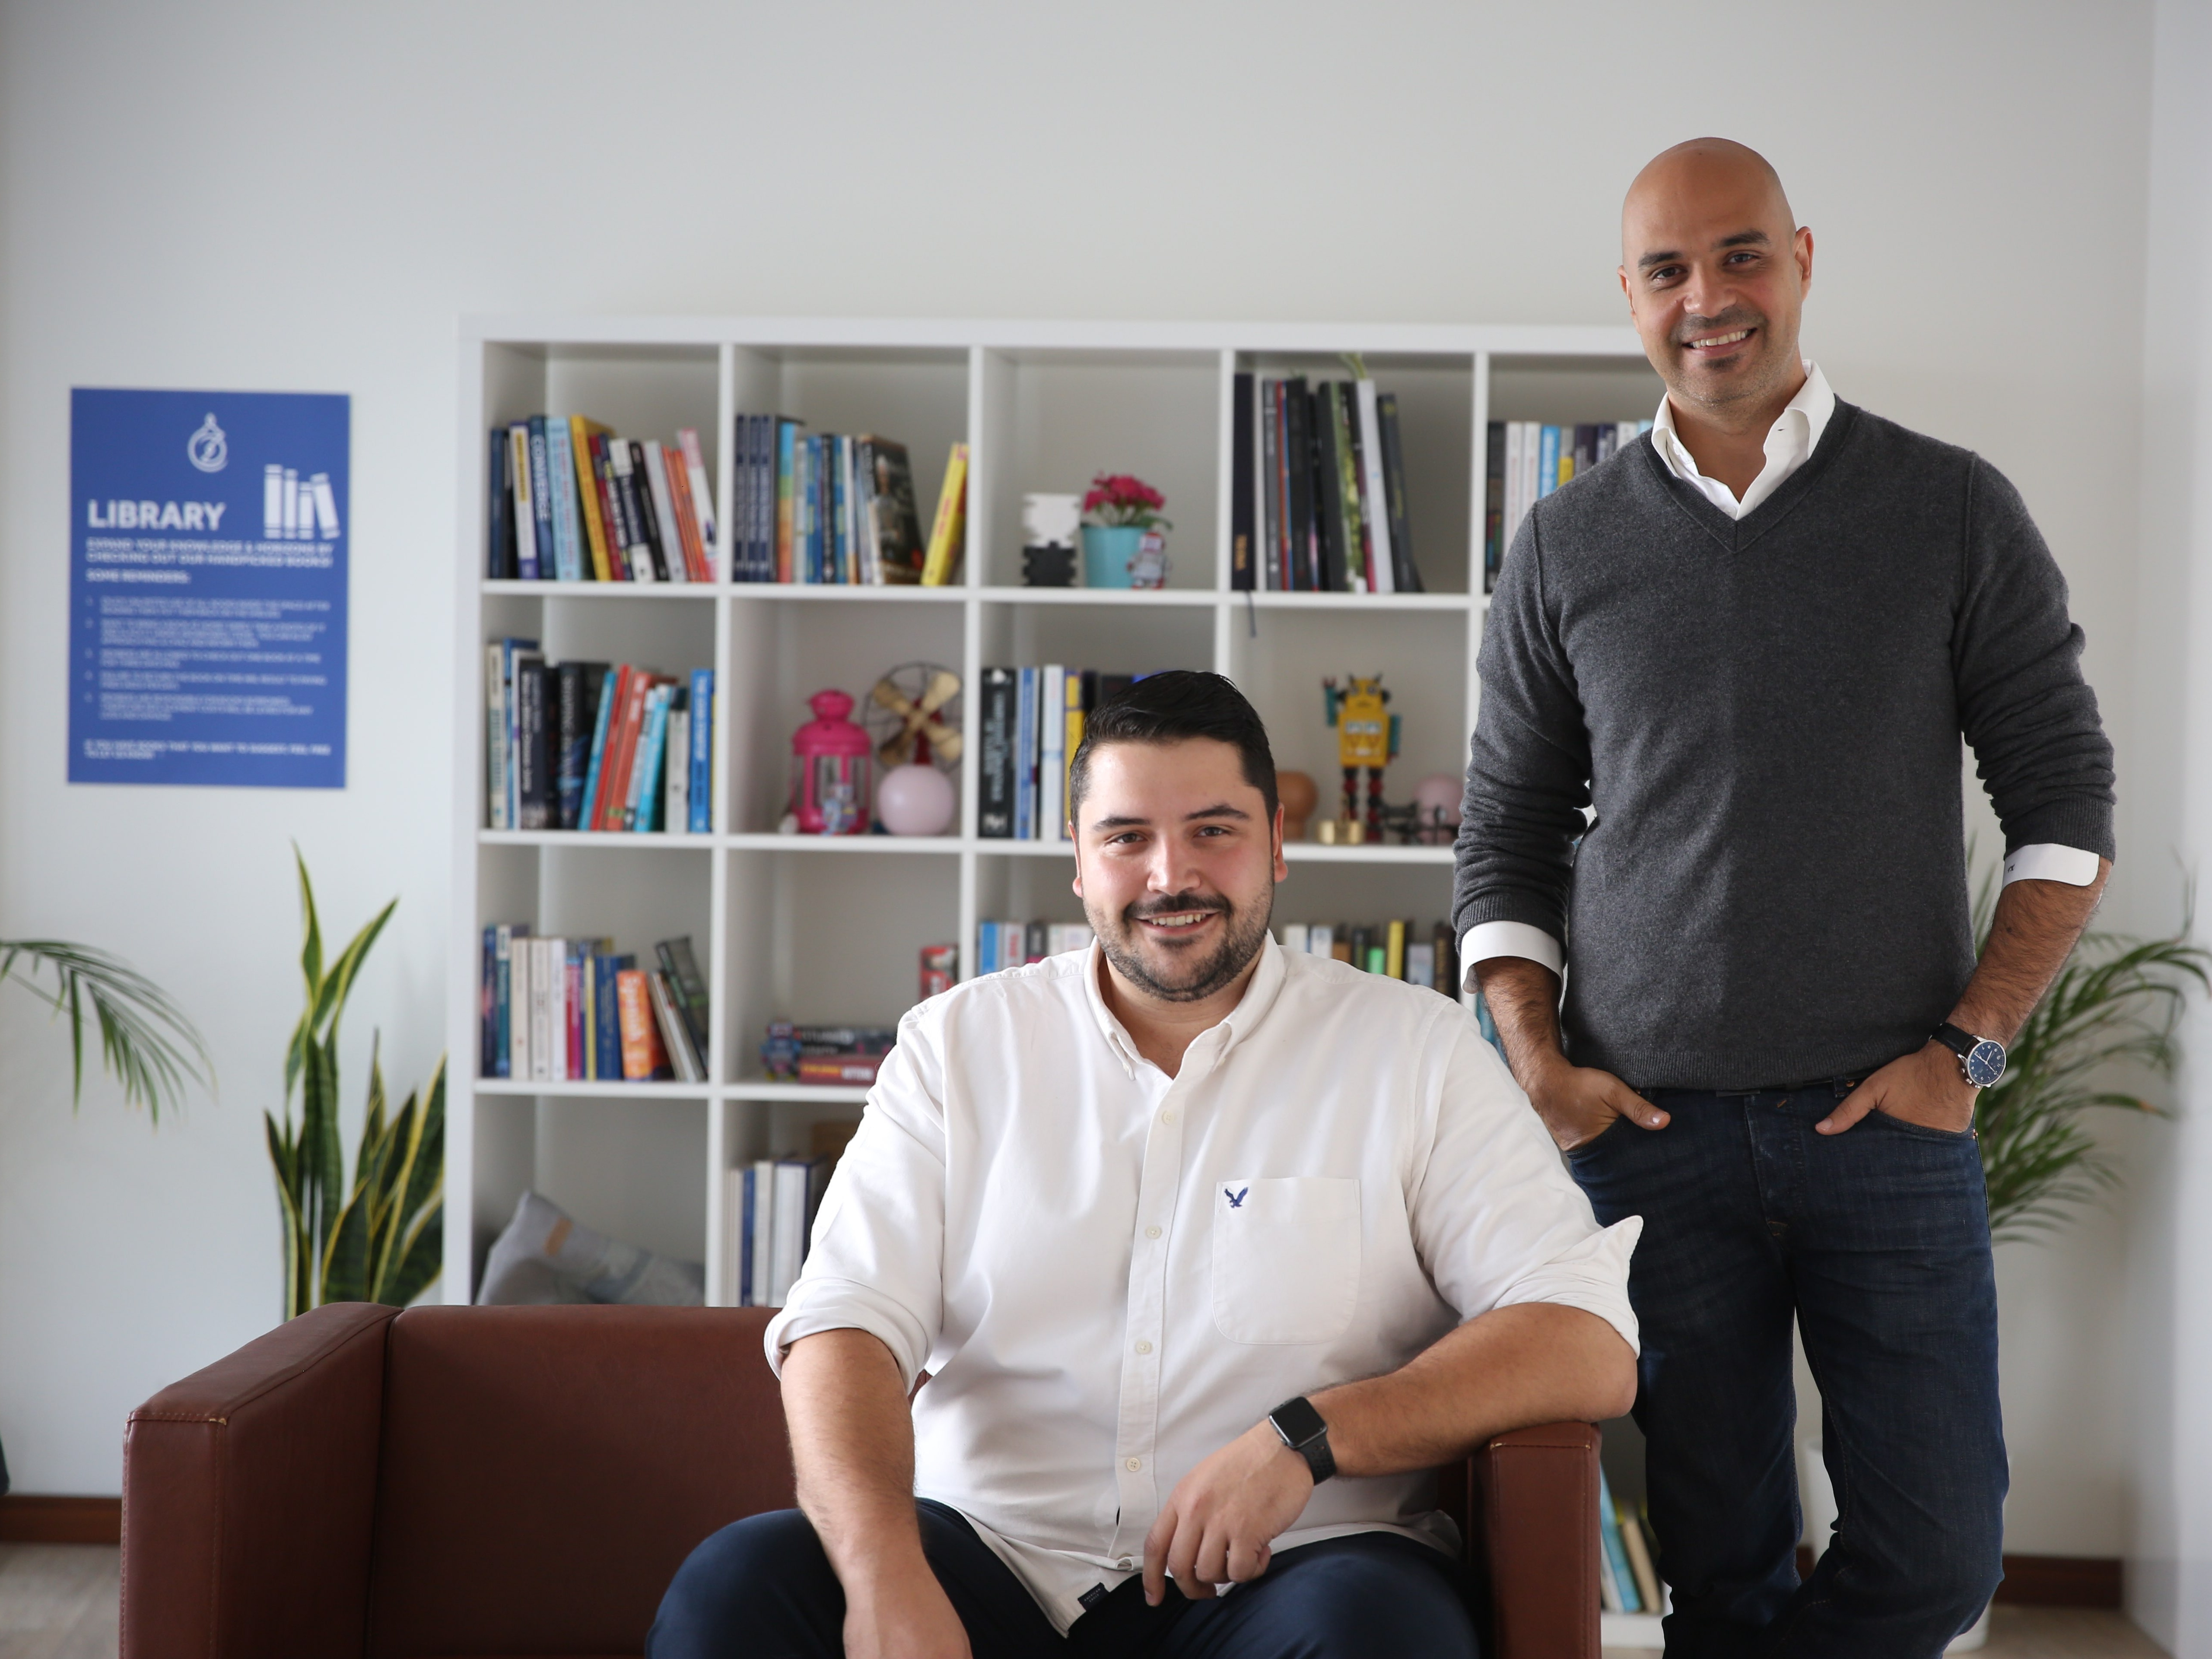 UAE-based automative startup Seez raises a $6M Series A funding round from VCs and strategic investors